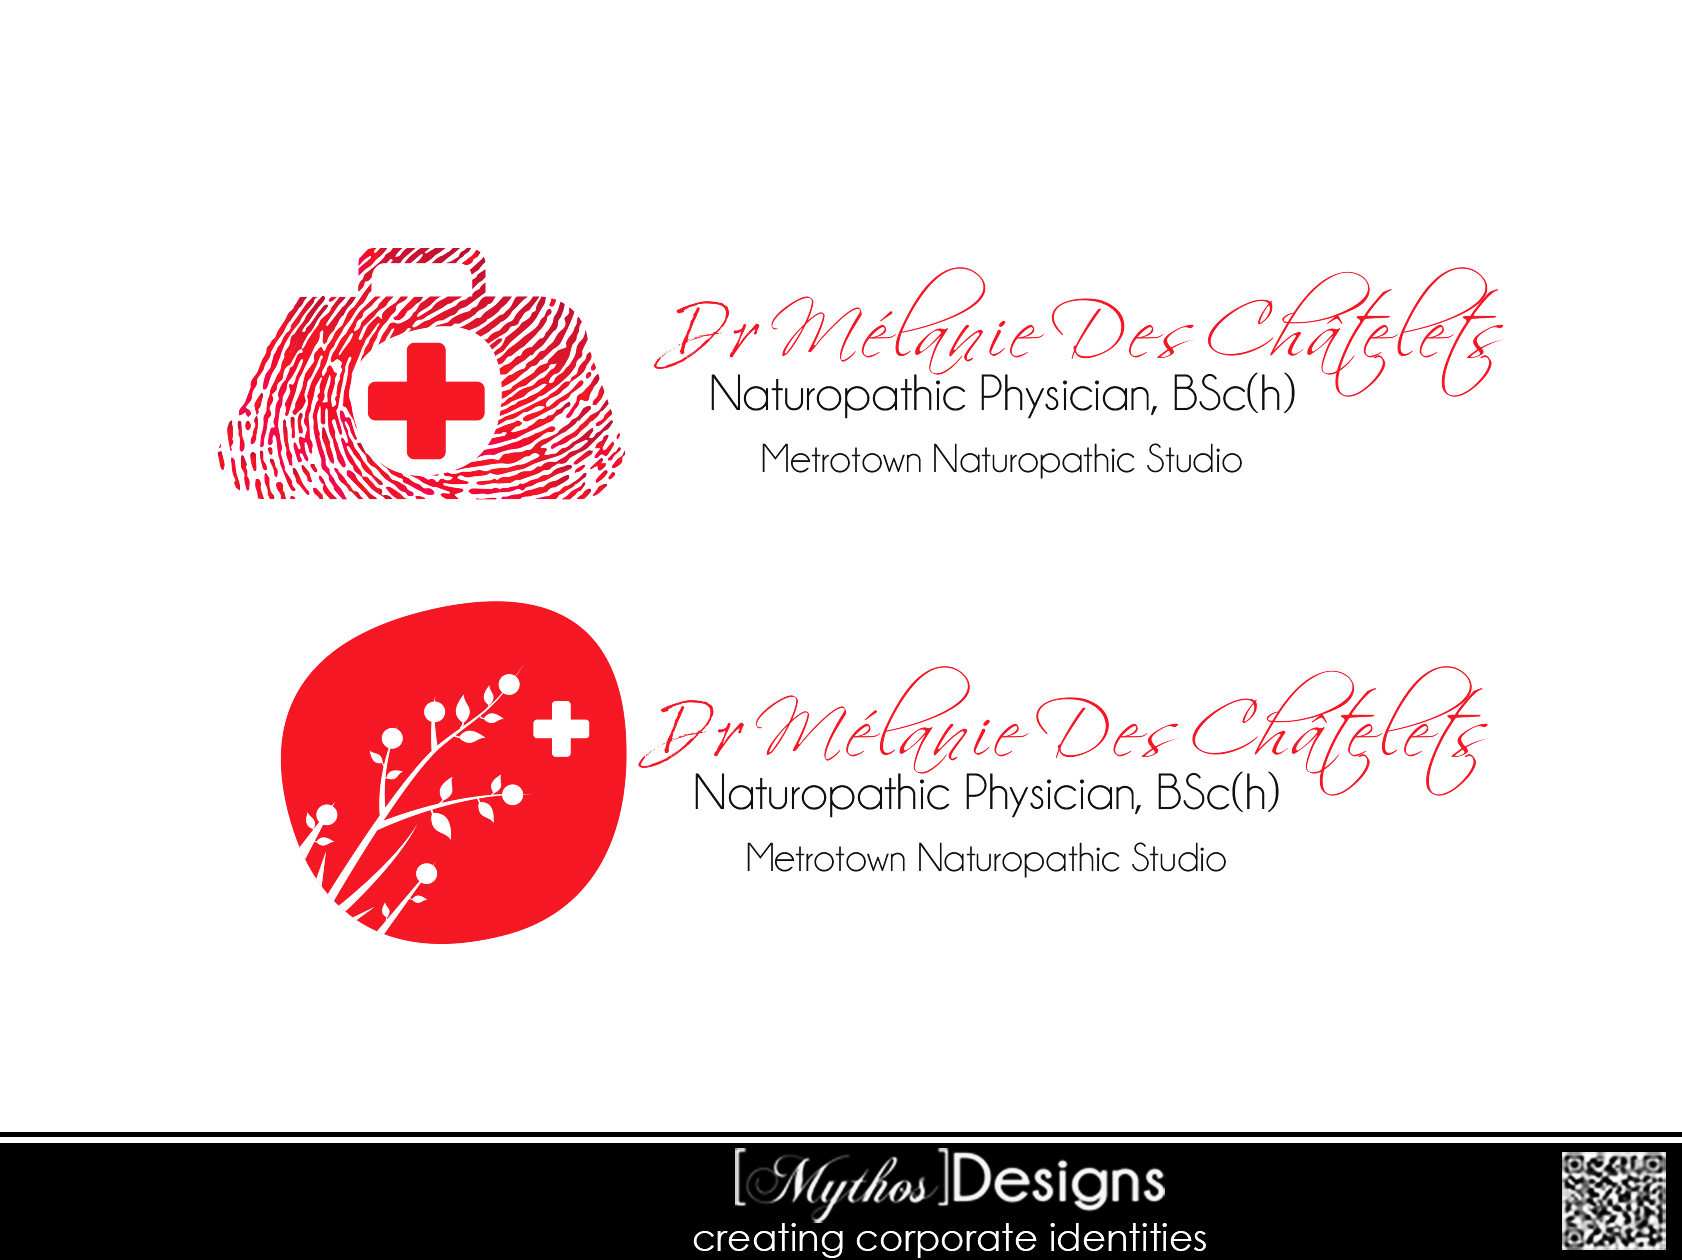 Logo Design by Mythos Designs - Entry No. 71 in the Logo Design Contest Artistic Logo Design for Dr Mélanie DesChâtelets.